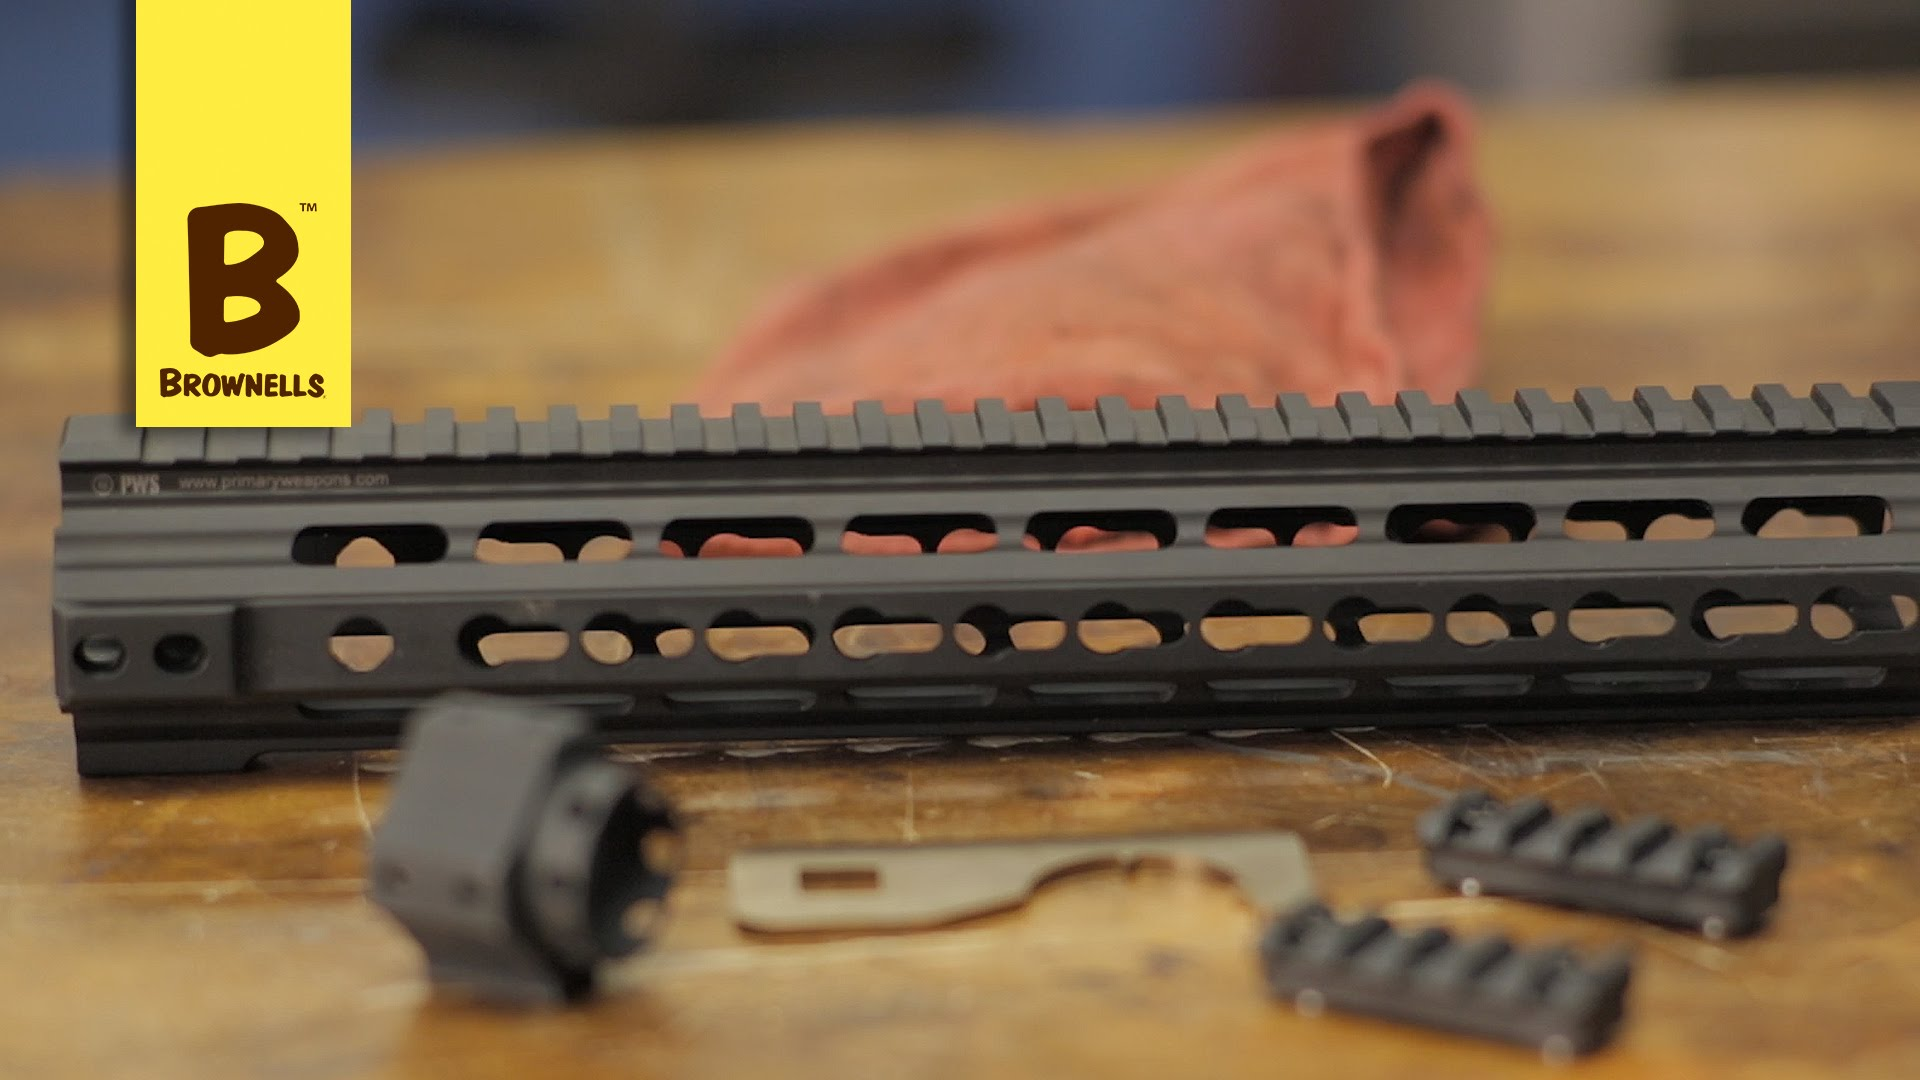 Primary Weapons Systems AR-15 Keymod Handguards